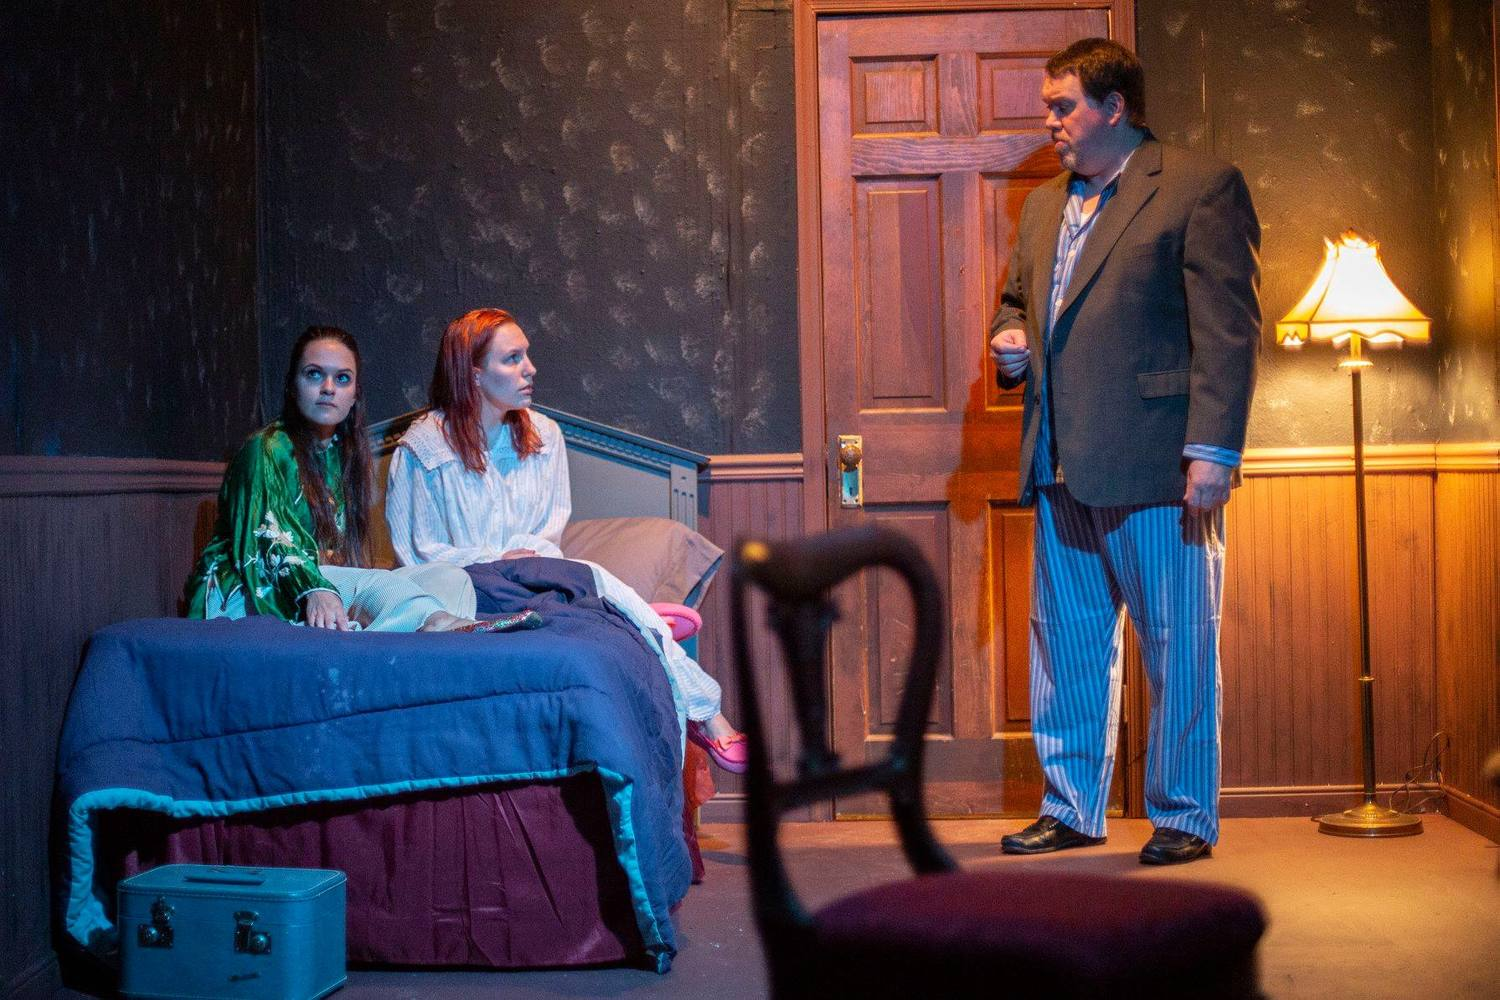 BWW Review: THE HAUNTING OF HILL HOUSE at Oyster Mill Playhouse